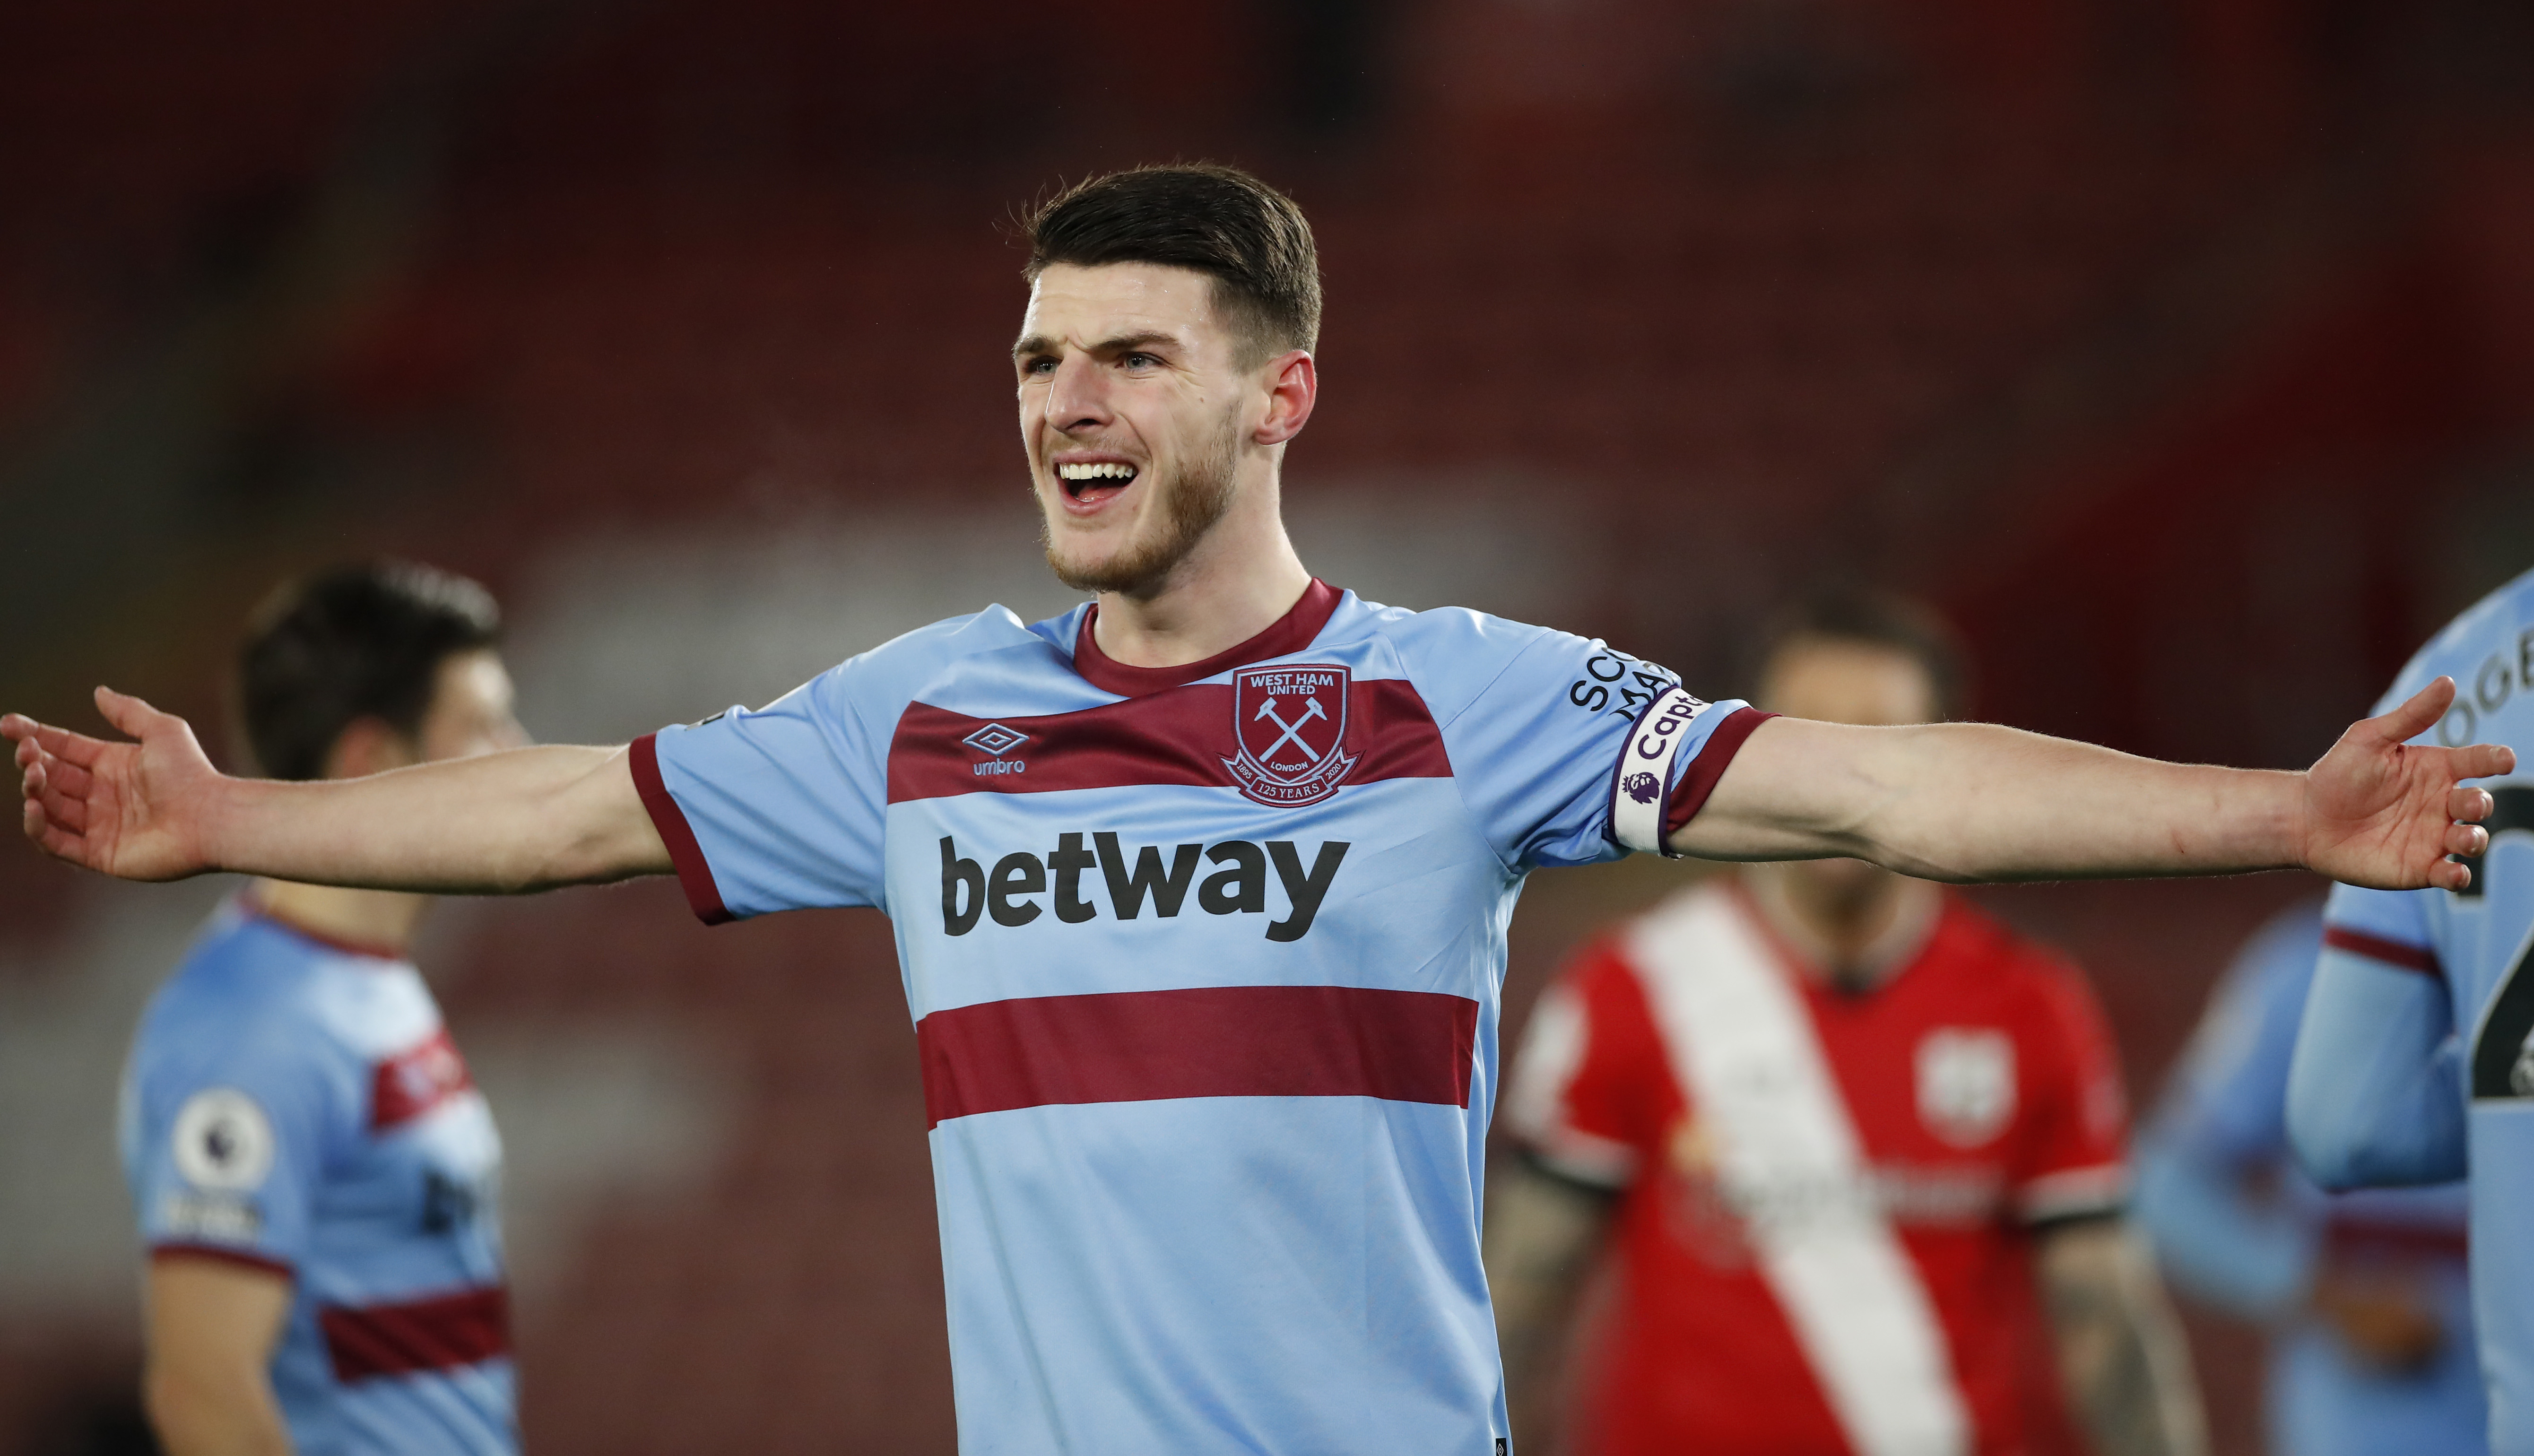 Manchester United Set To Hijack Chelsea's Move For Declan Rice (Declan Rice can be seen in the picture)